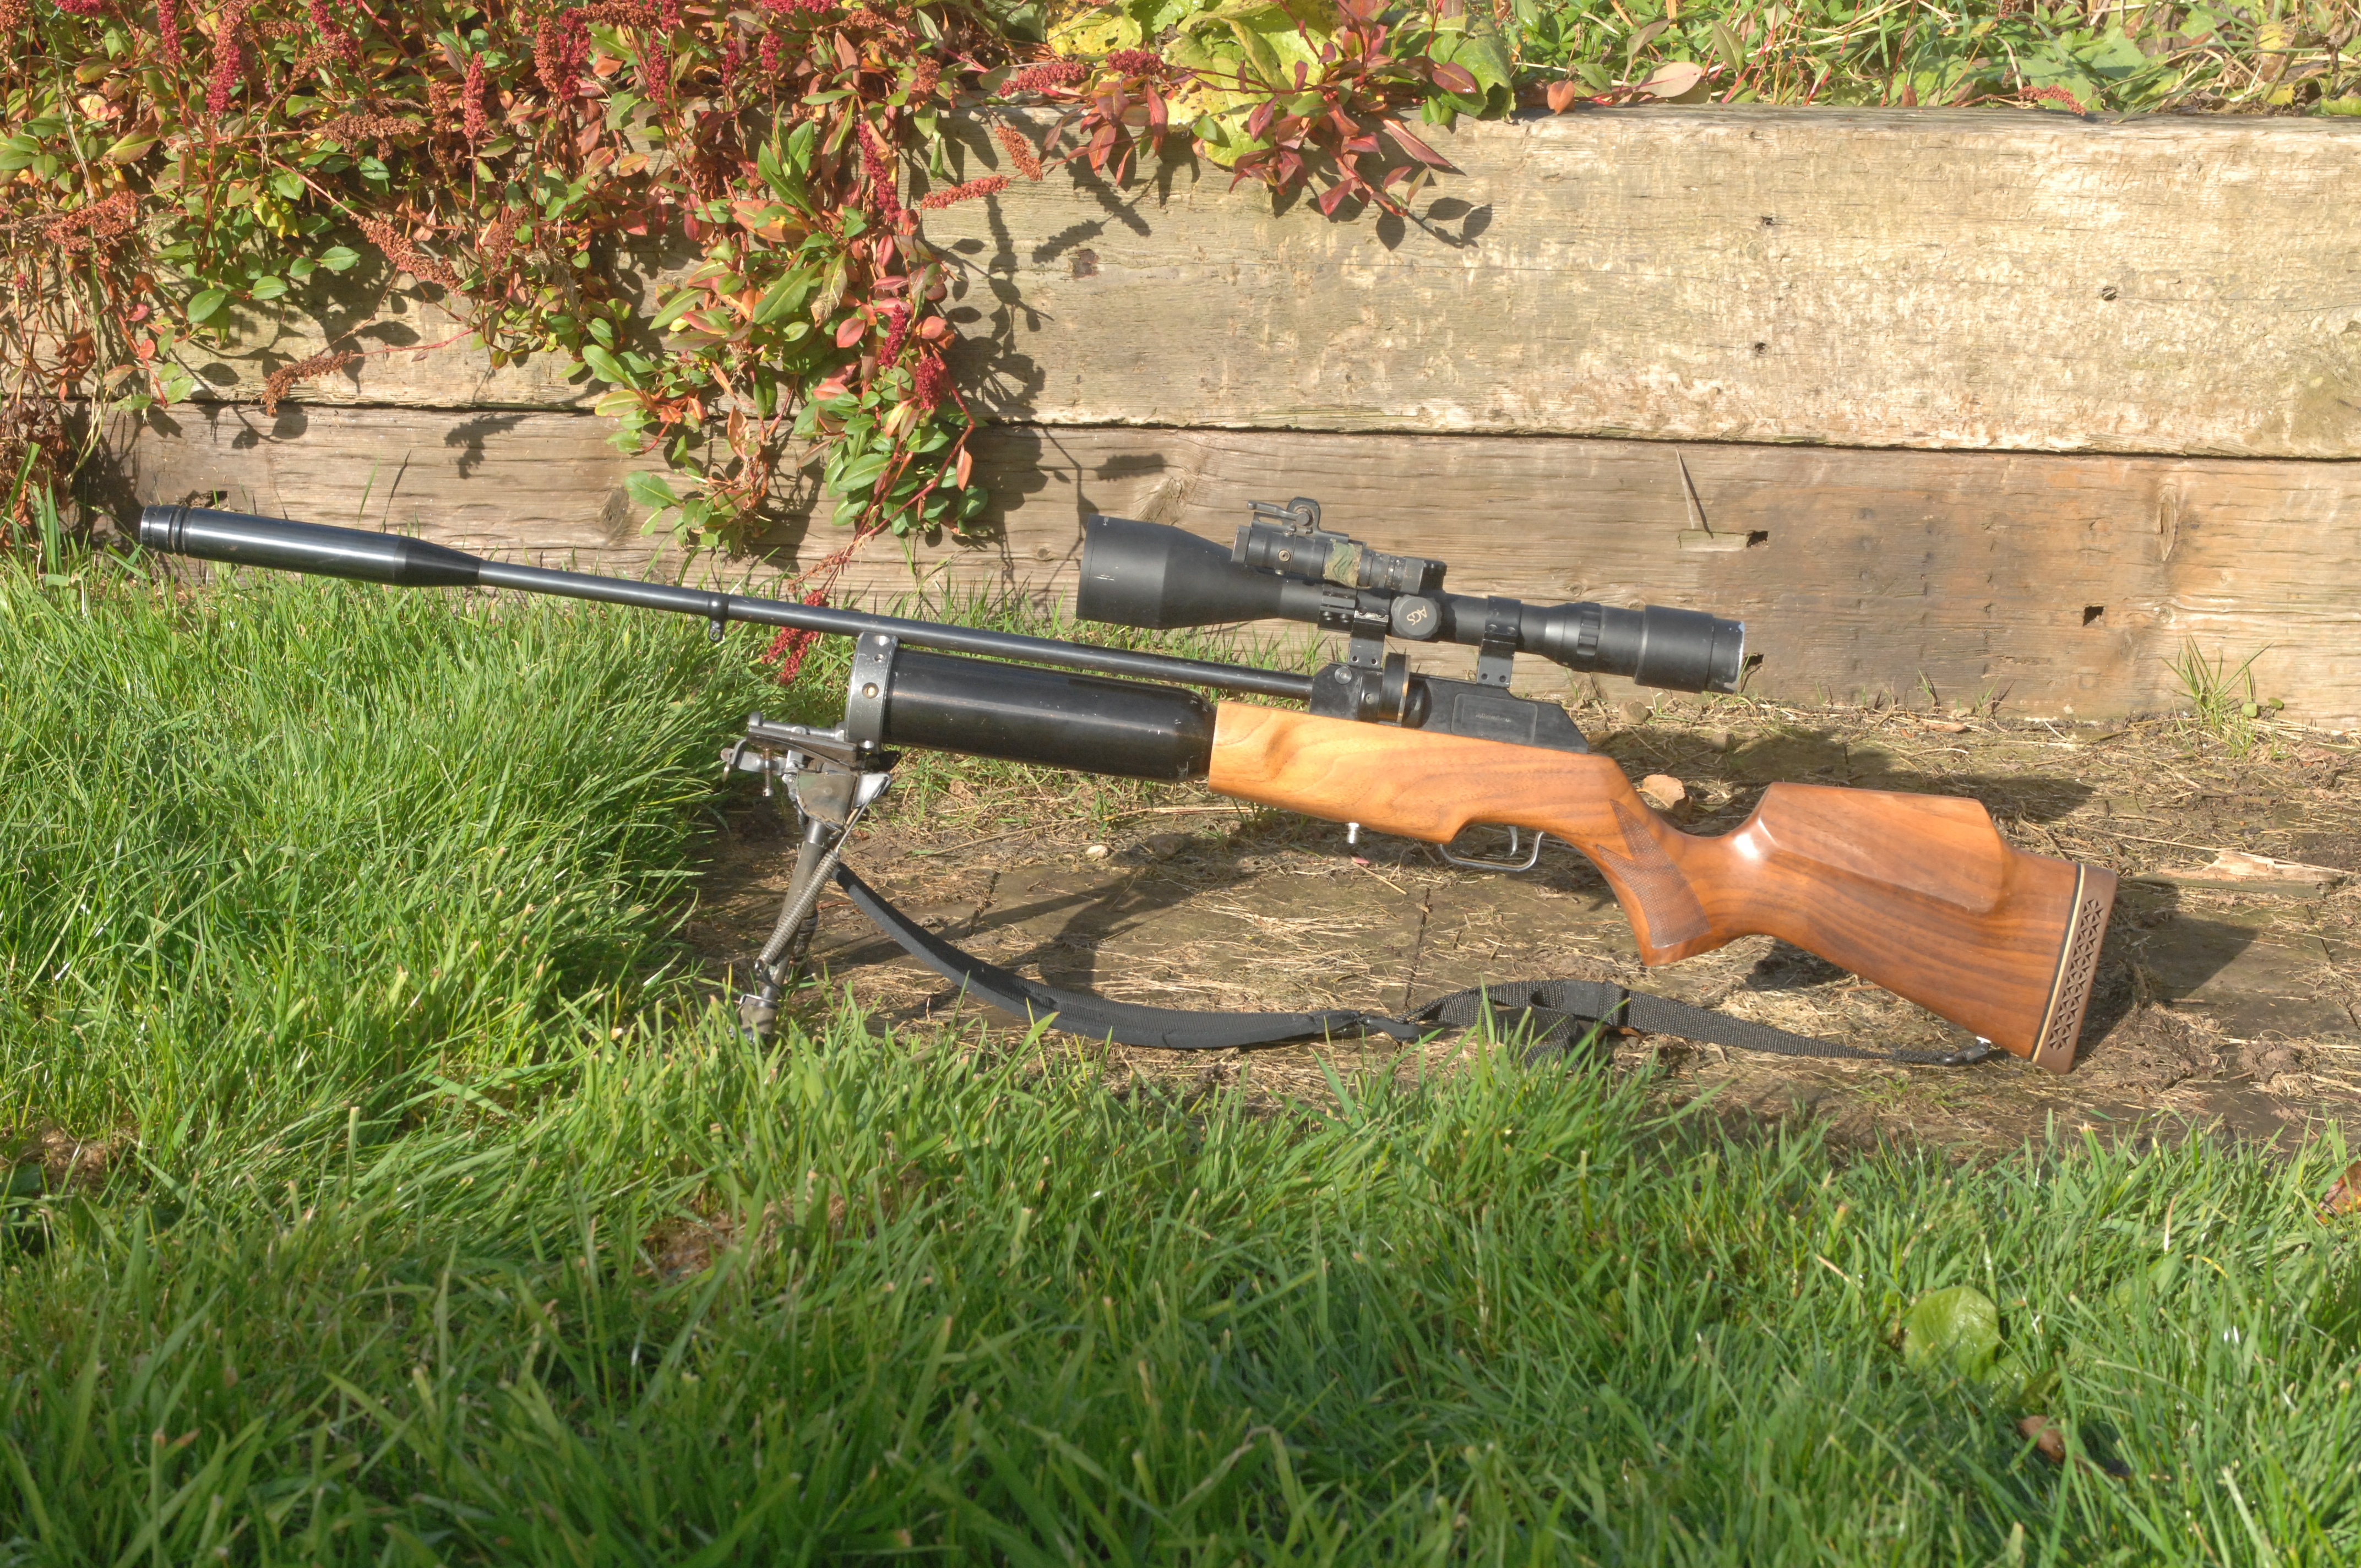 FAC air rifles - are they necessary? - Shooting UK